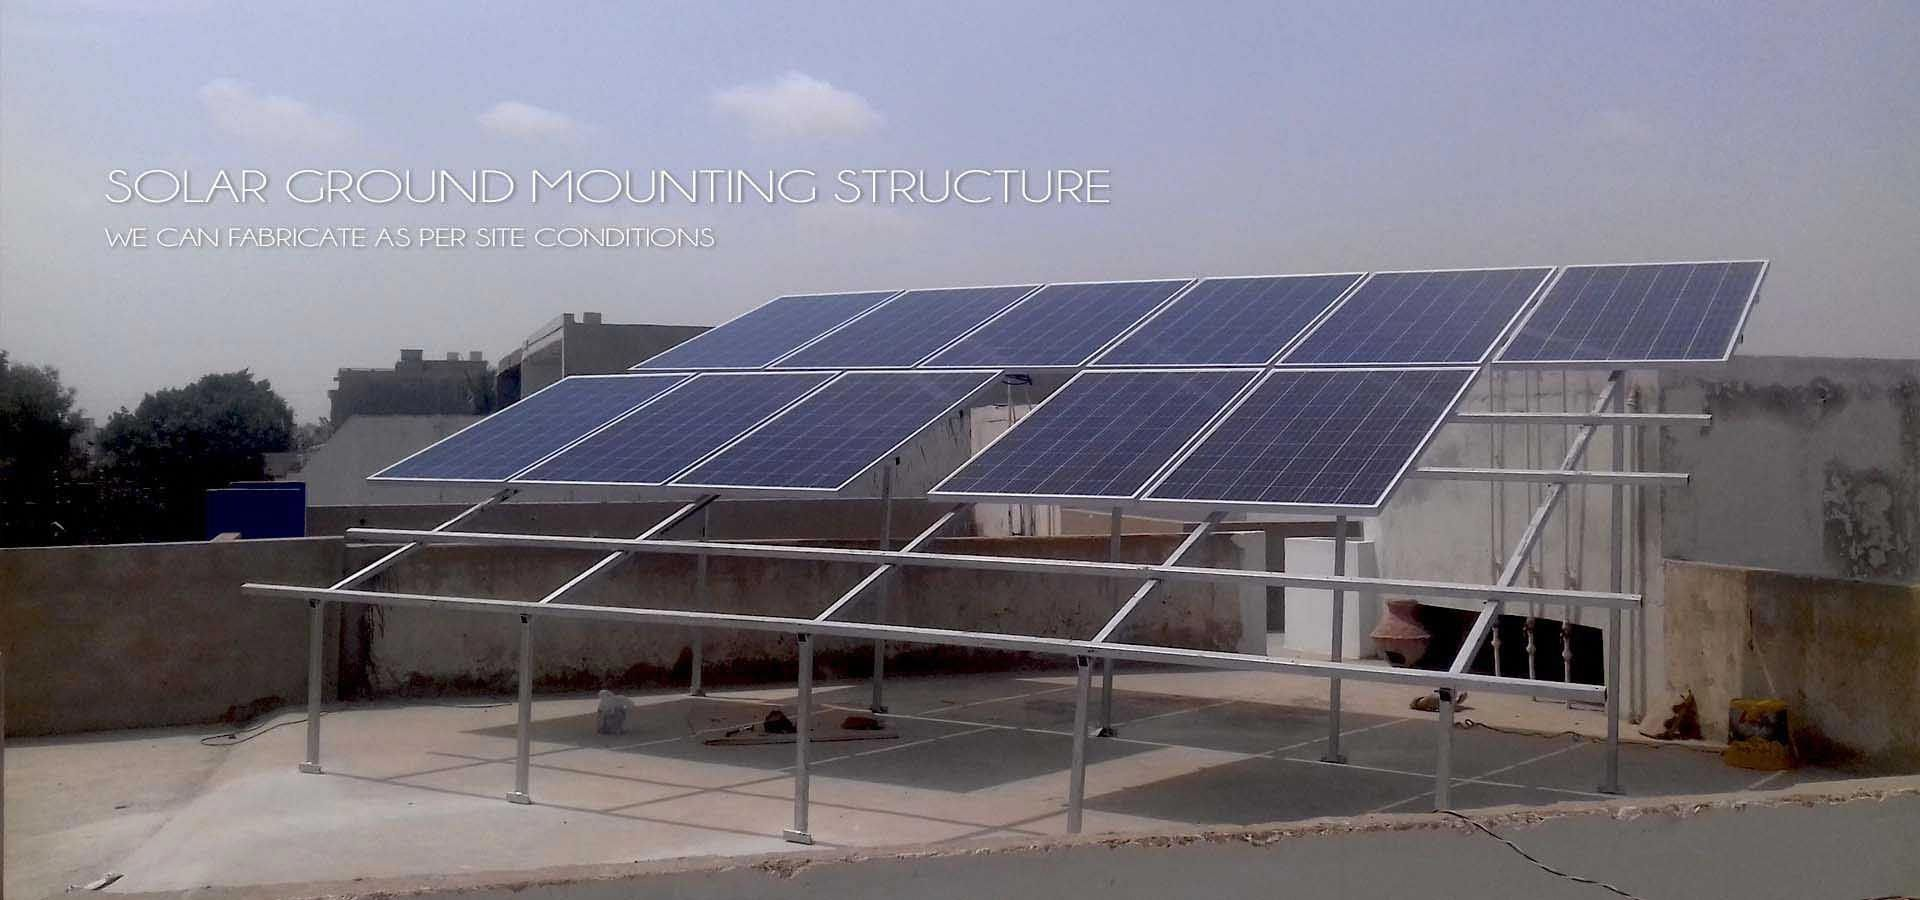 We Design Solar Panel Structure As Per Site Conditions Our Ms Structure Ability To Install 3 Up Solar Panels Solarpan Solar Panels Solar Solar Energy Panels